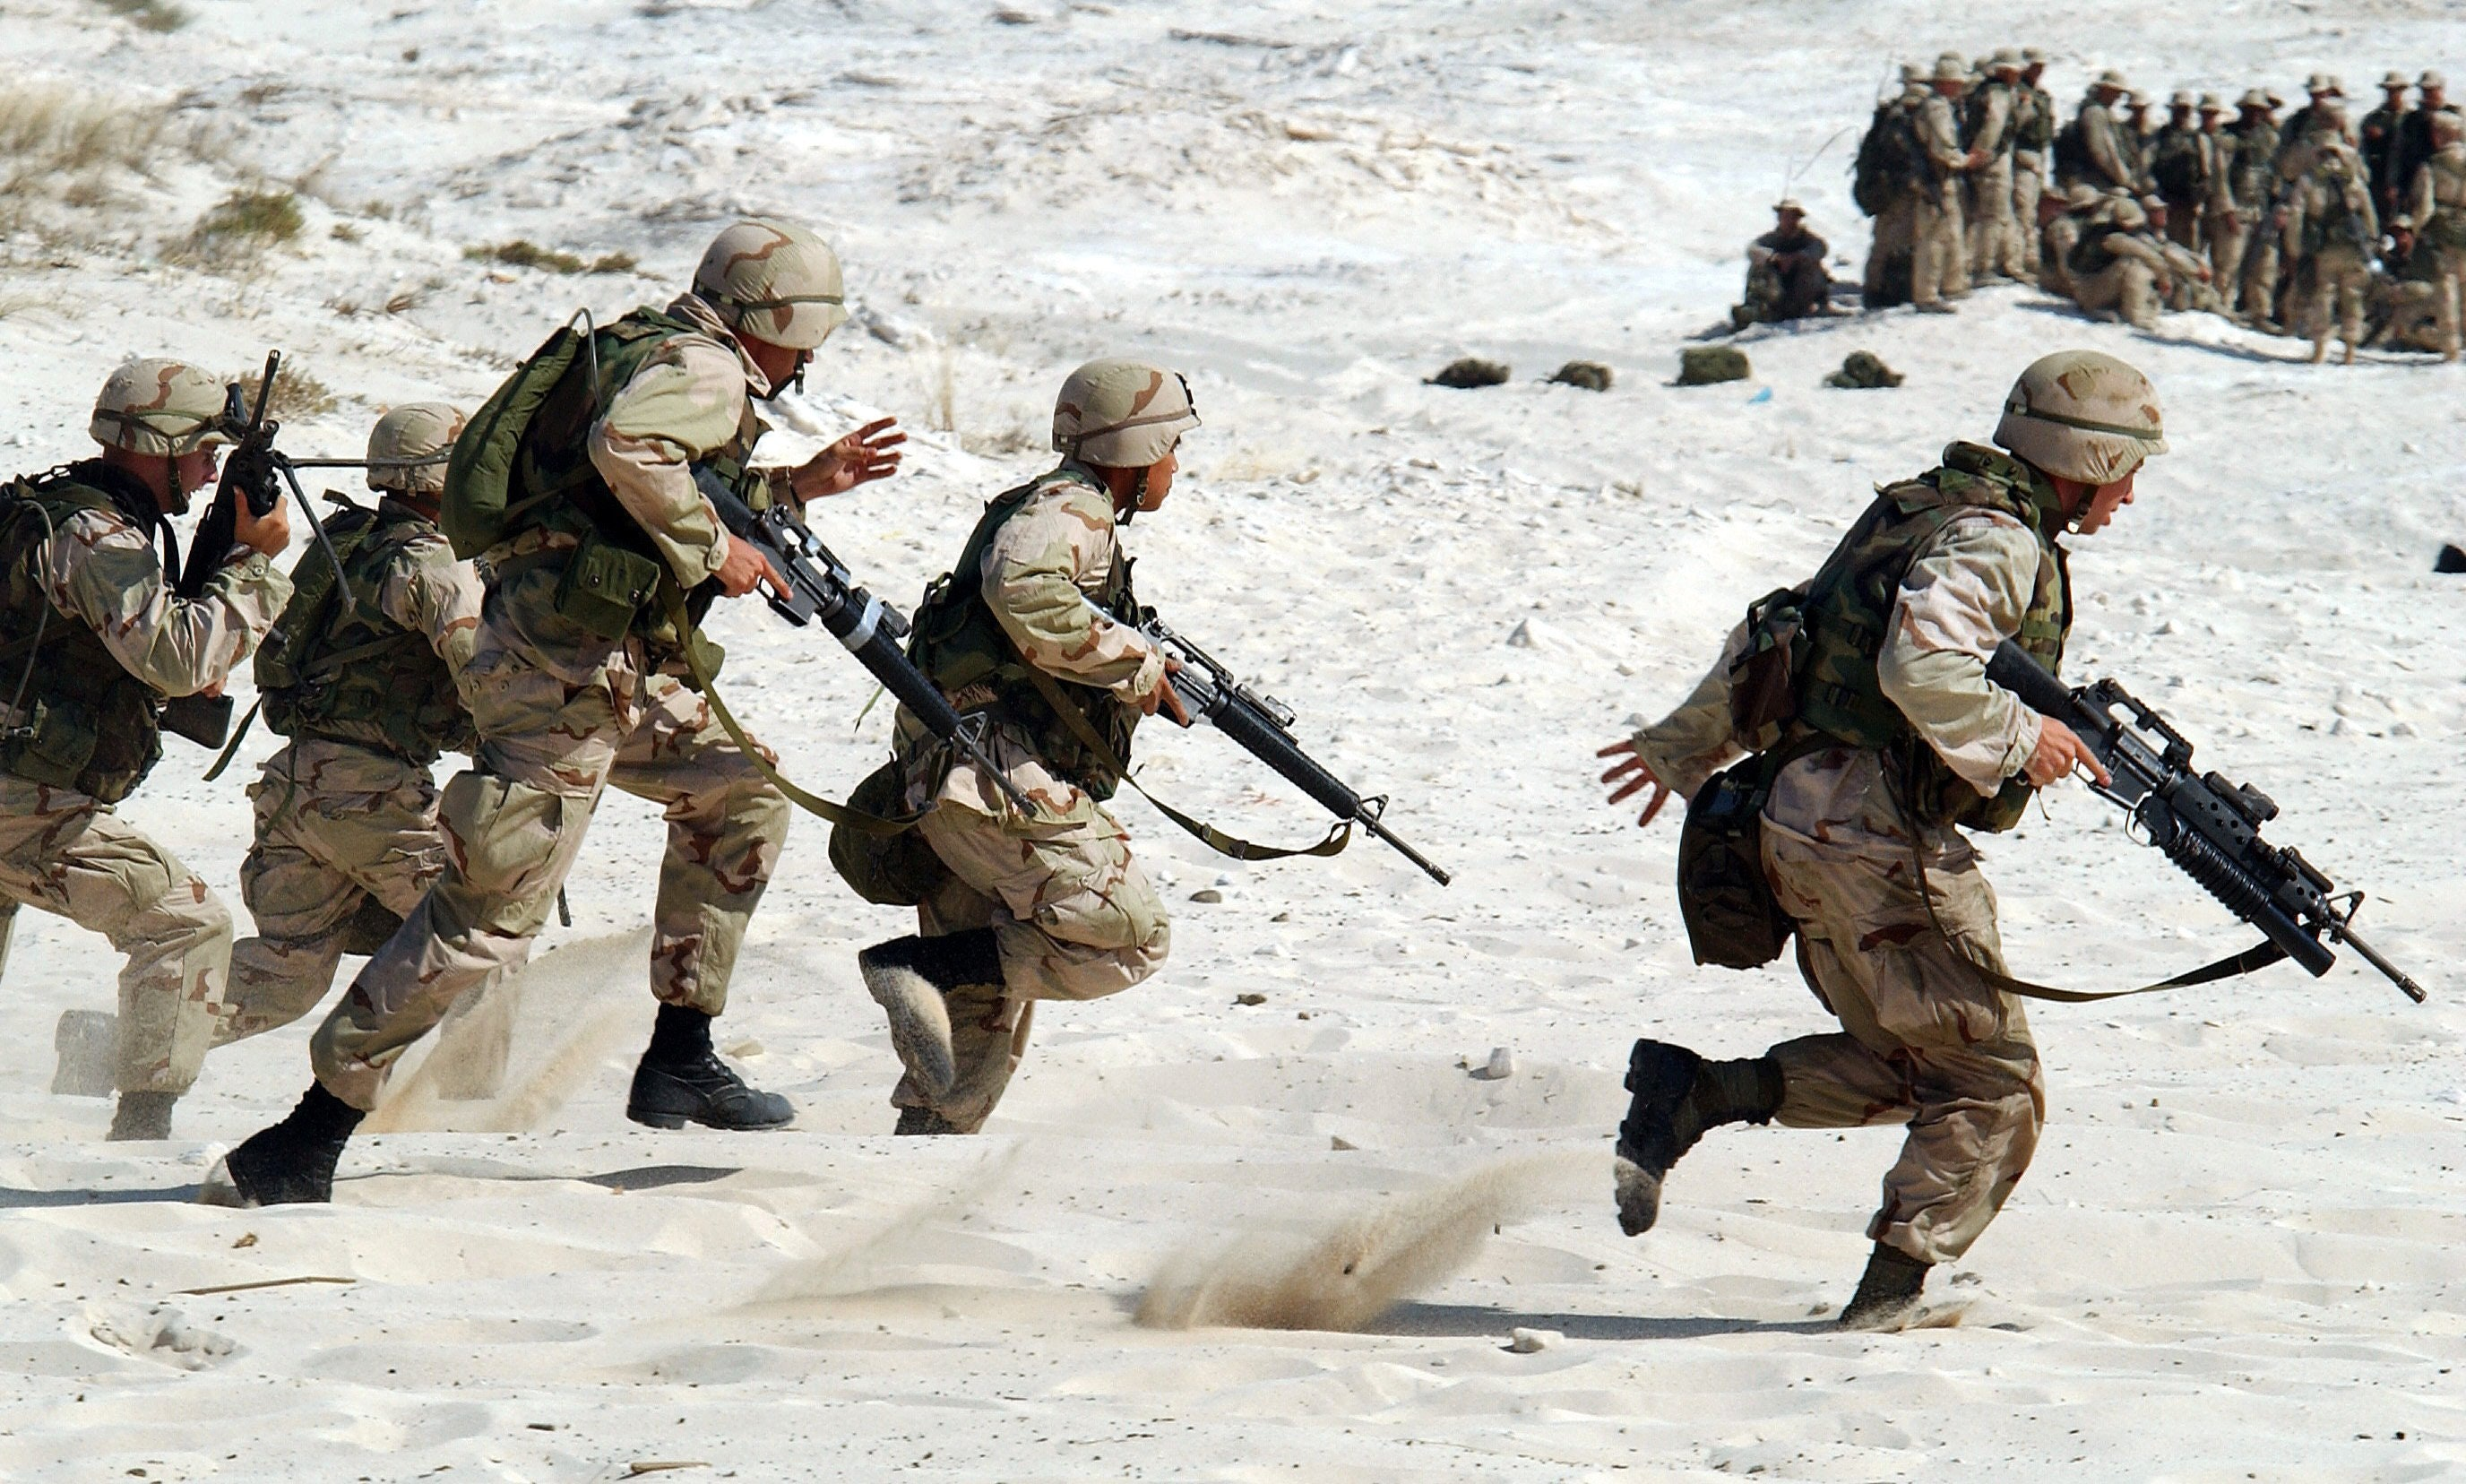 5 Soldiers Holding Rifle Running on White Sand during